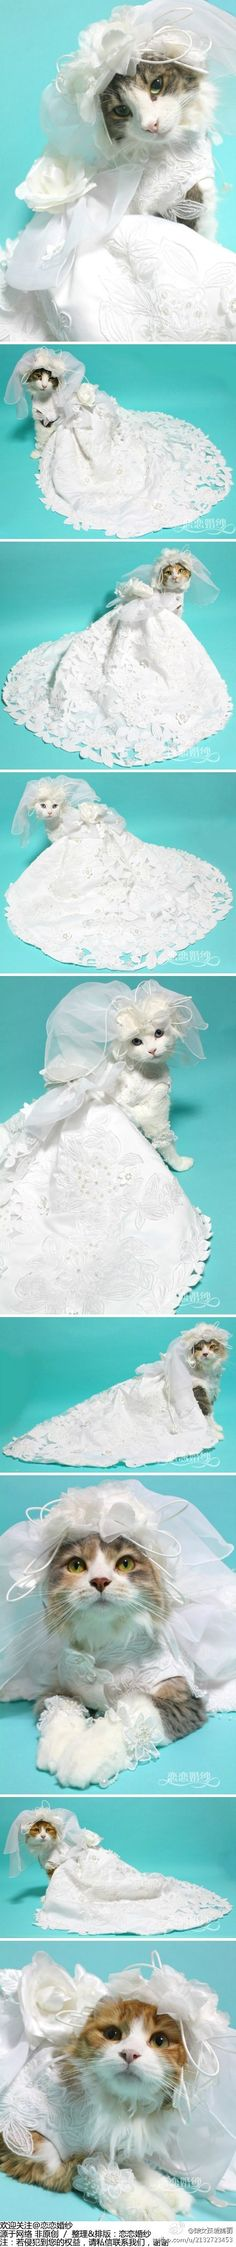 Cats in Wedding Dresses. Thank you internet for this, I will cherish it always.